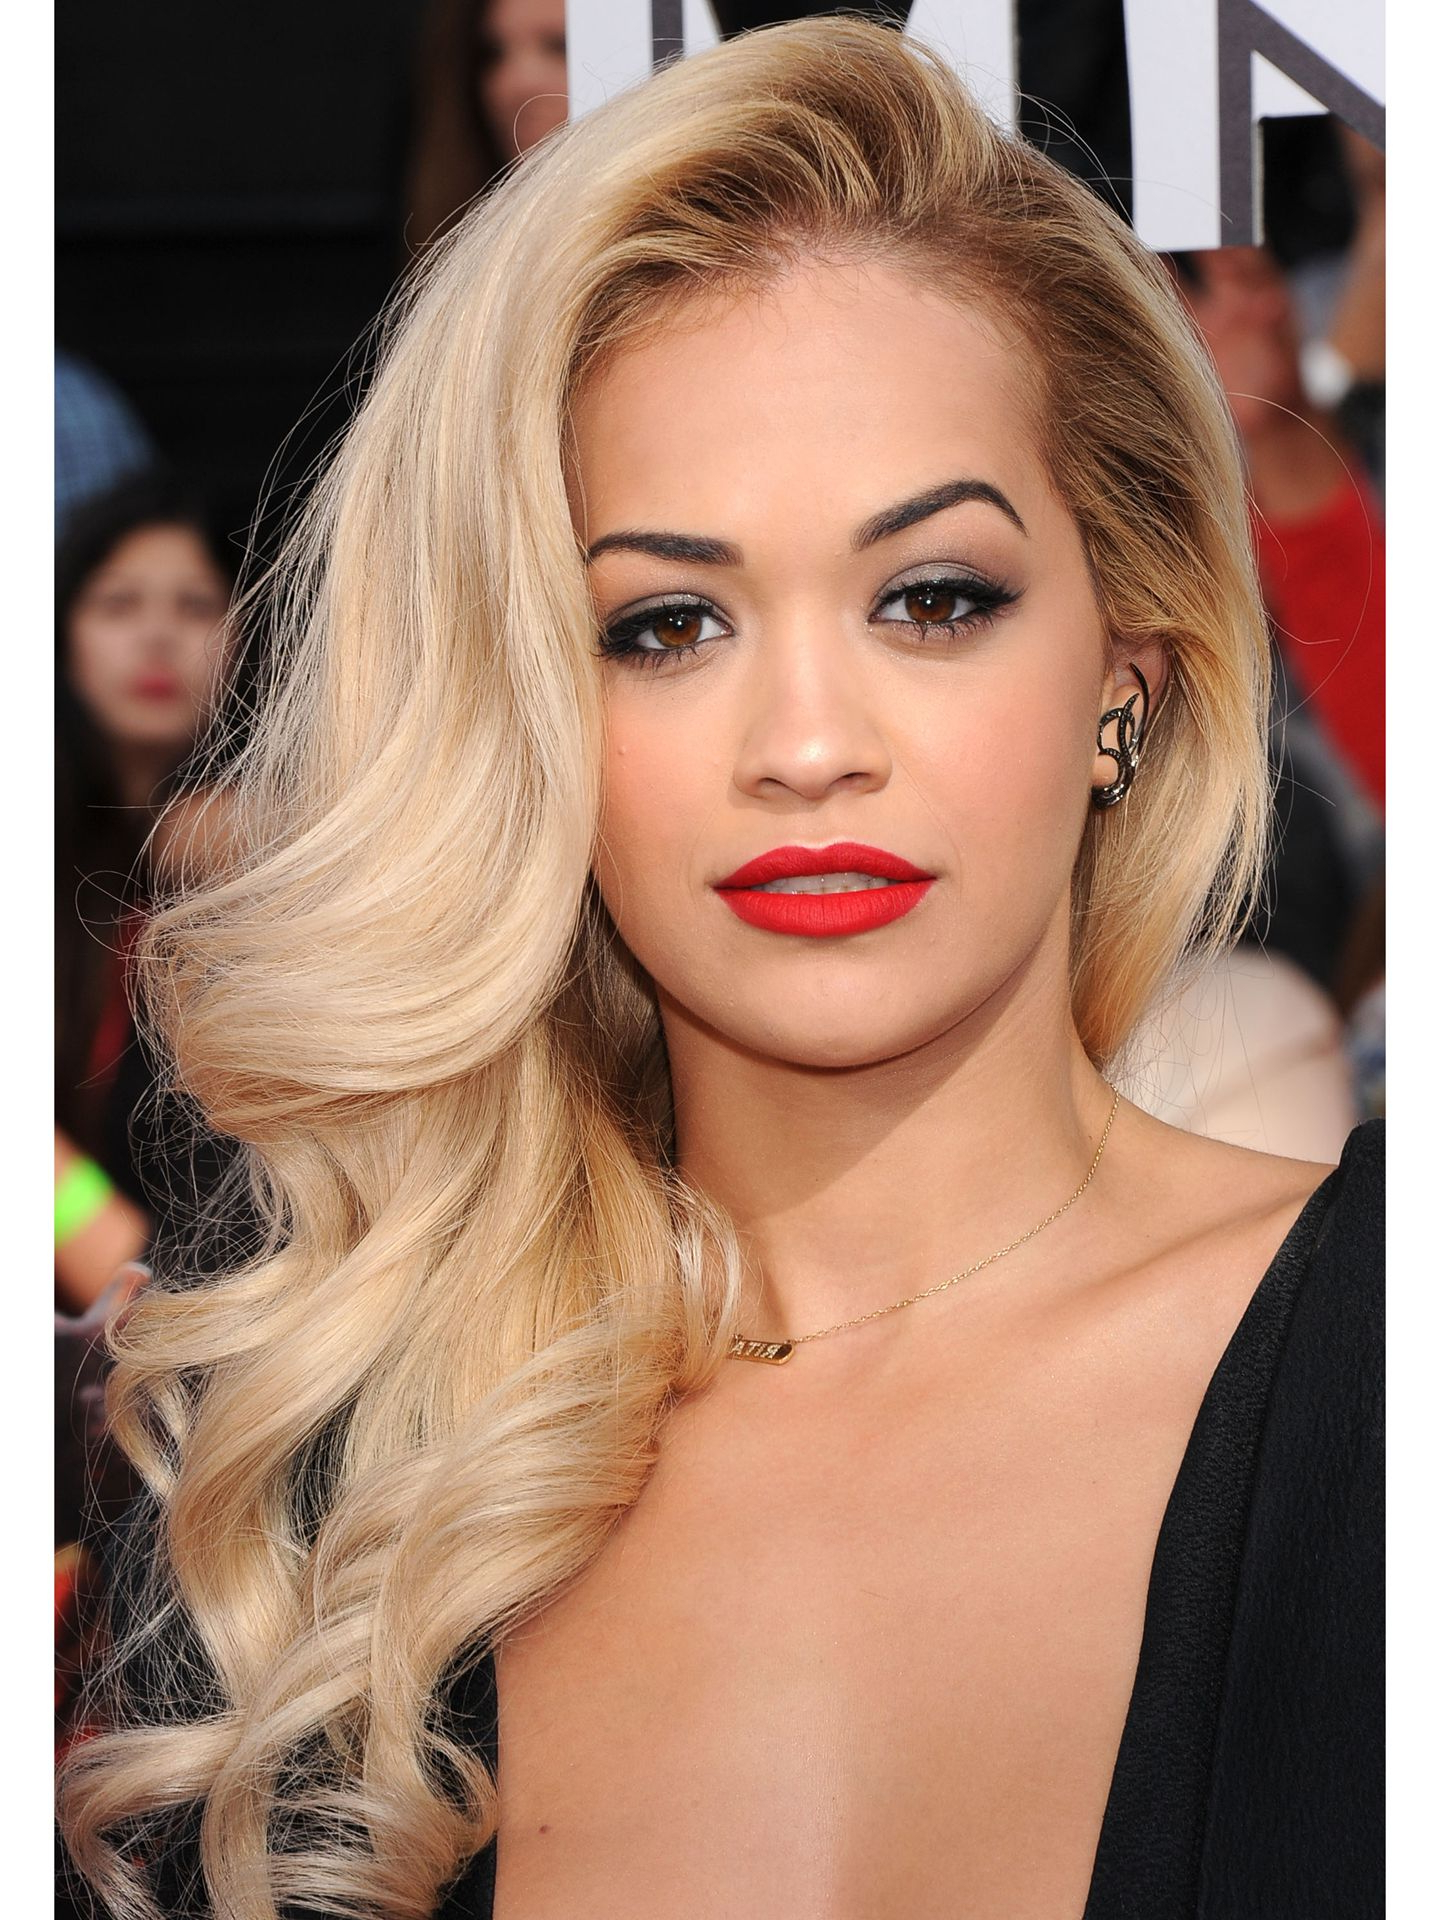 11 Side Swept Hairstyles – Celebrity Side Hairstyle Inspiration Pertaining To Most Up To Date Rita Ora Medium Hairstyles (View 7 of 20)